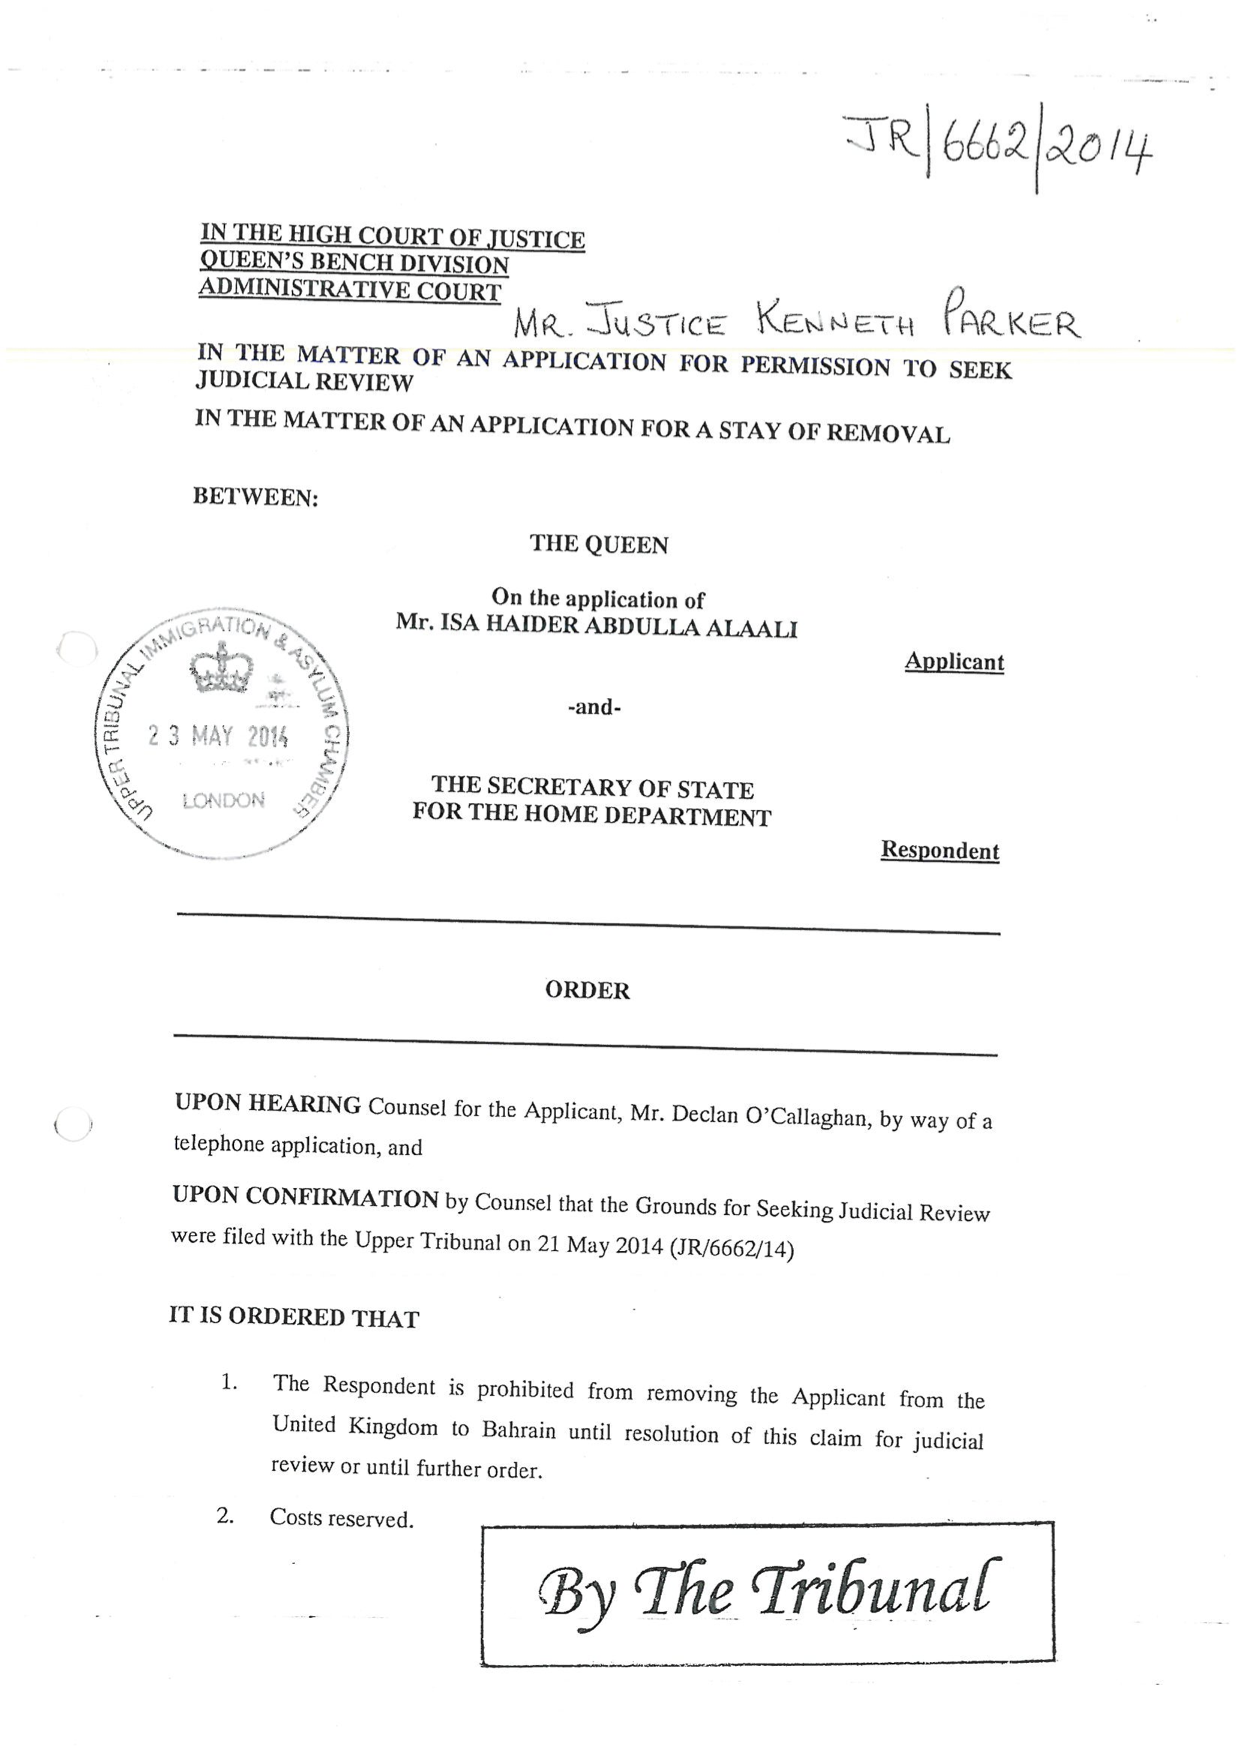 UK Court order 21 May 14